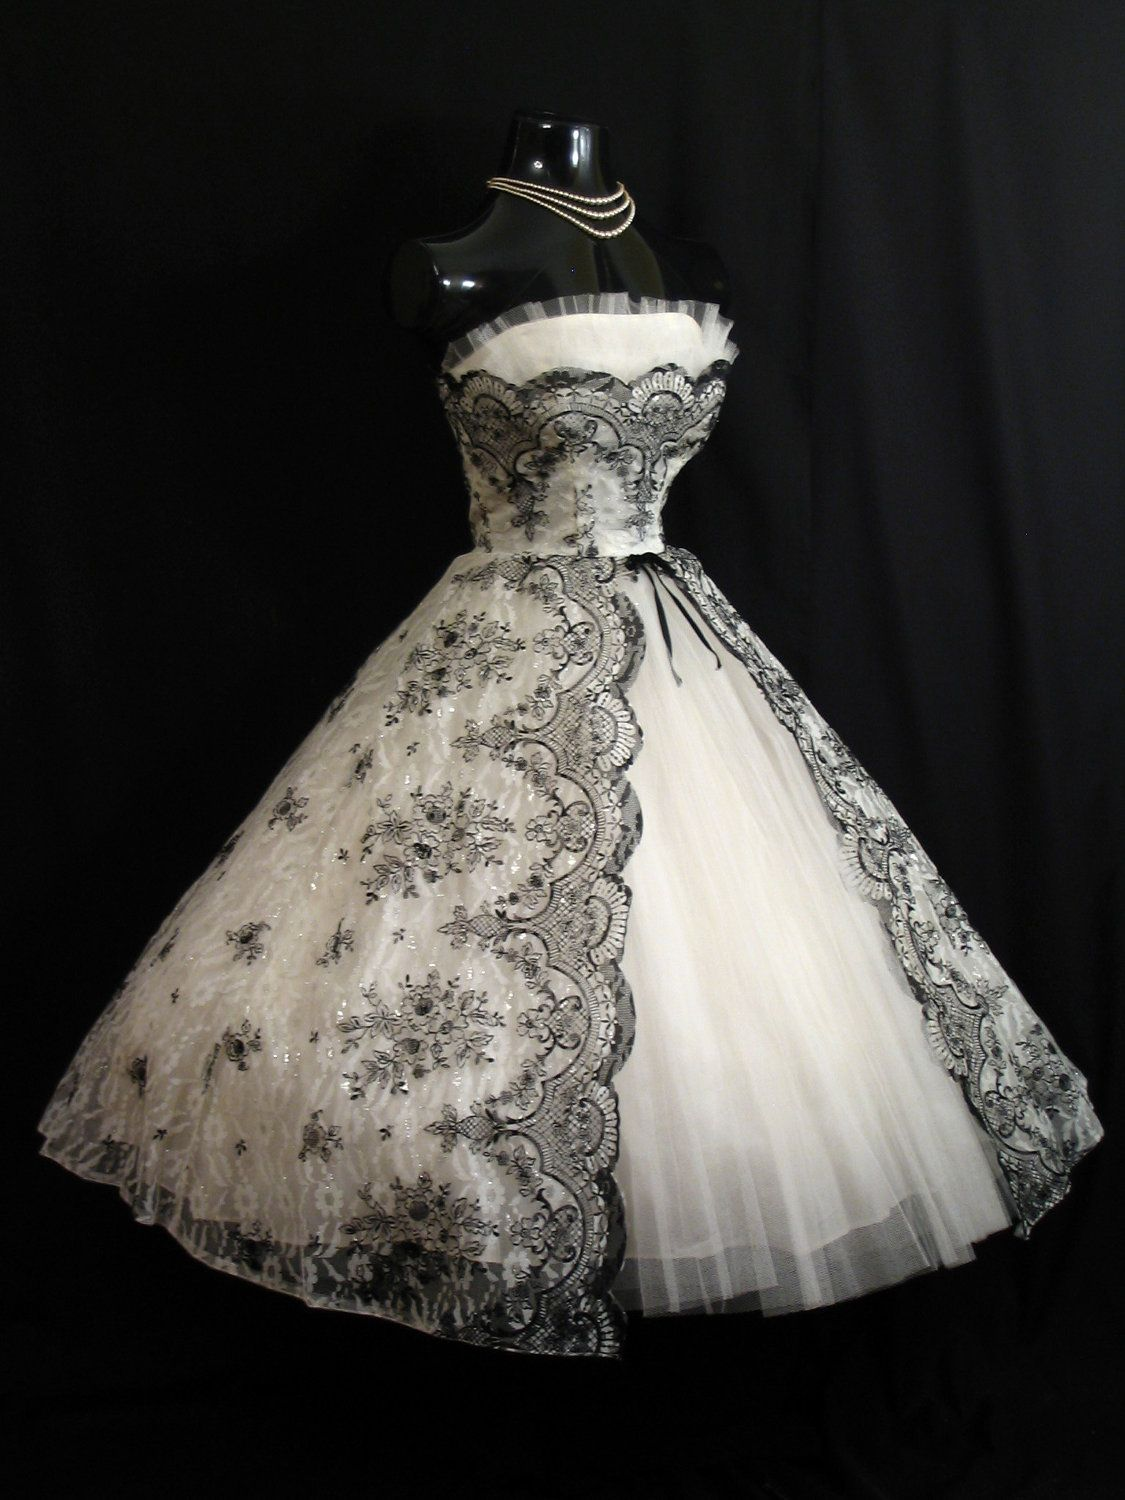 bf4f66f6ff7 Vintage 1950 s 50s Bombshell STRAPLESS Black White Metallic Floral Flocked  Tulle Party Prom Wedding DRESS.  599.99